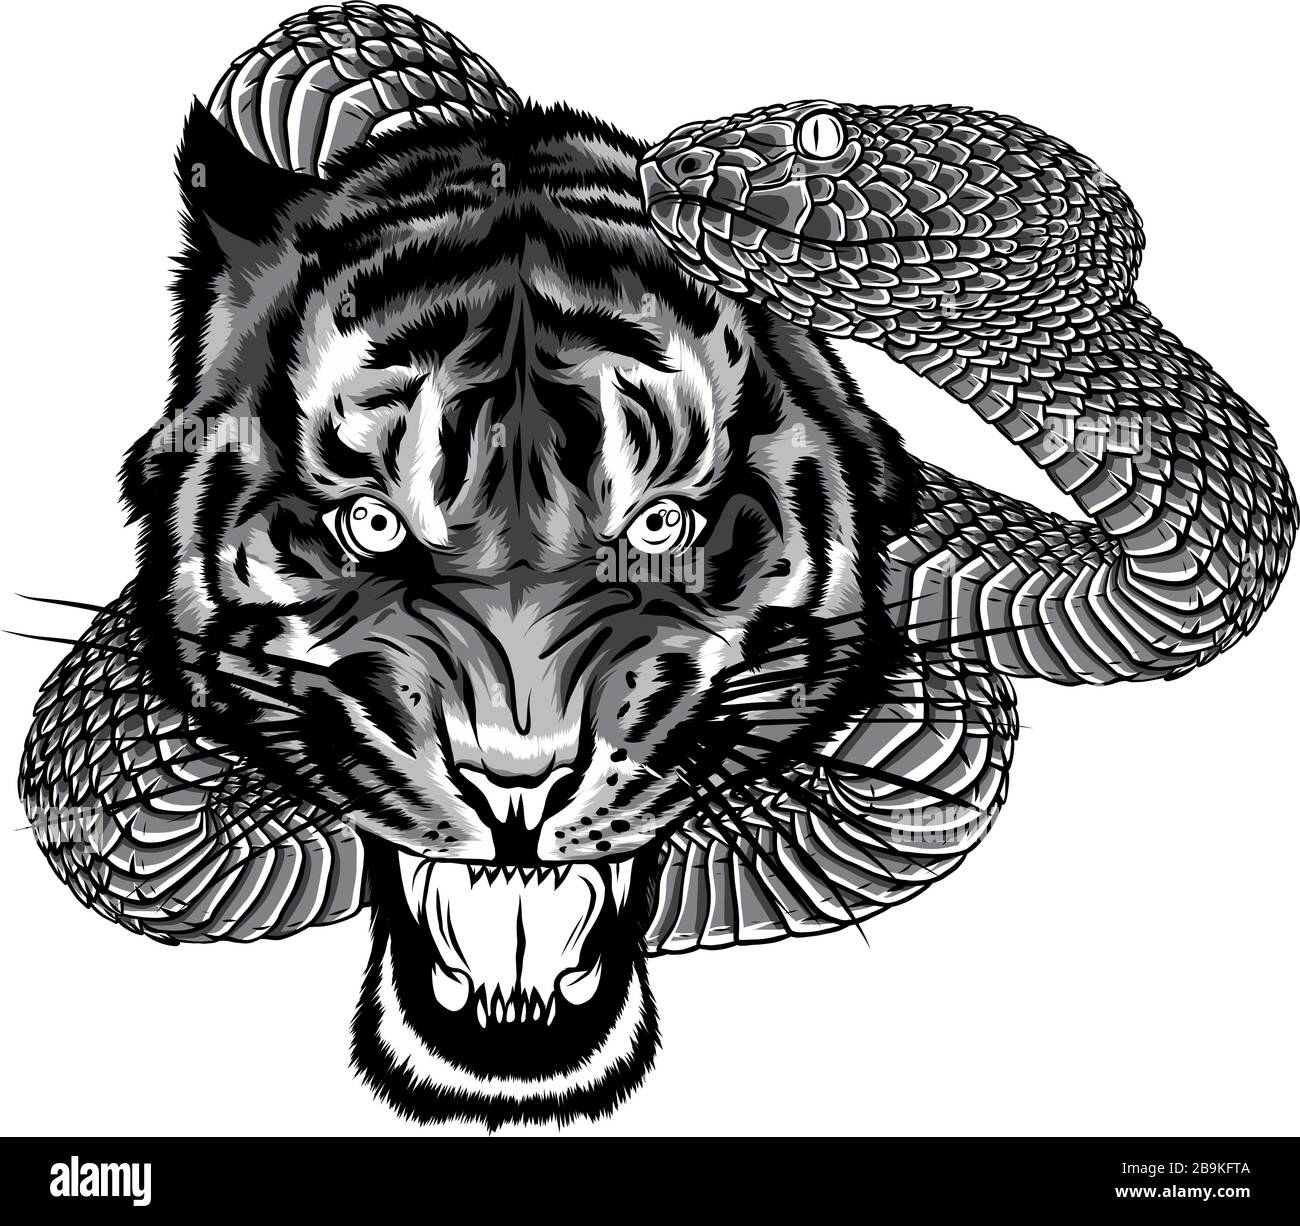 Tiger Tattoo High Resolution Stock Photography And Images Alamy Tiger tattoos have become quite popular due to different astonishing tiger tattoo designs, each featuring fearless tigers such as the bengal tiger or the white tiger. https www alamy com snake and tiger fighting tattoo illustration design image350168794 html